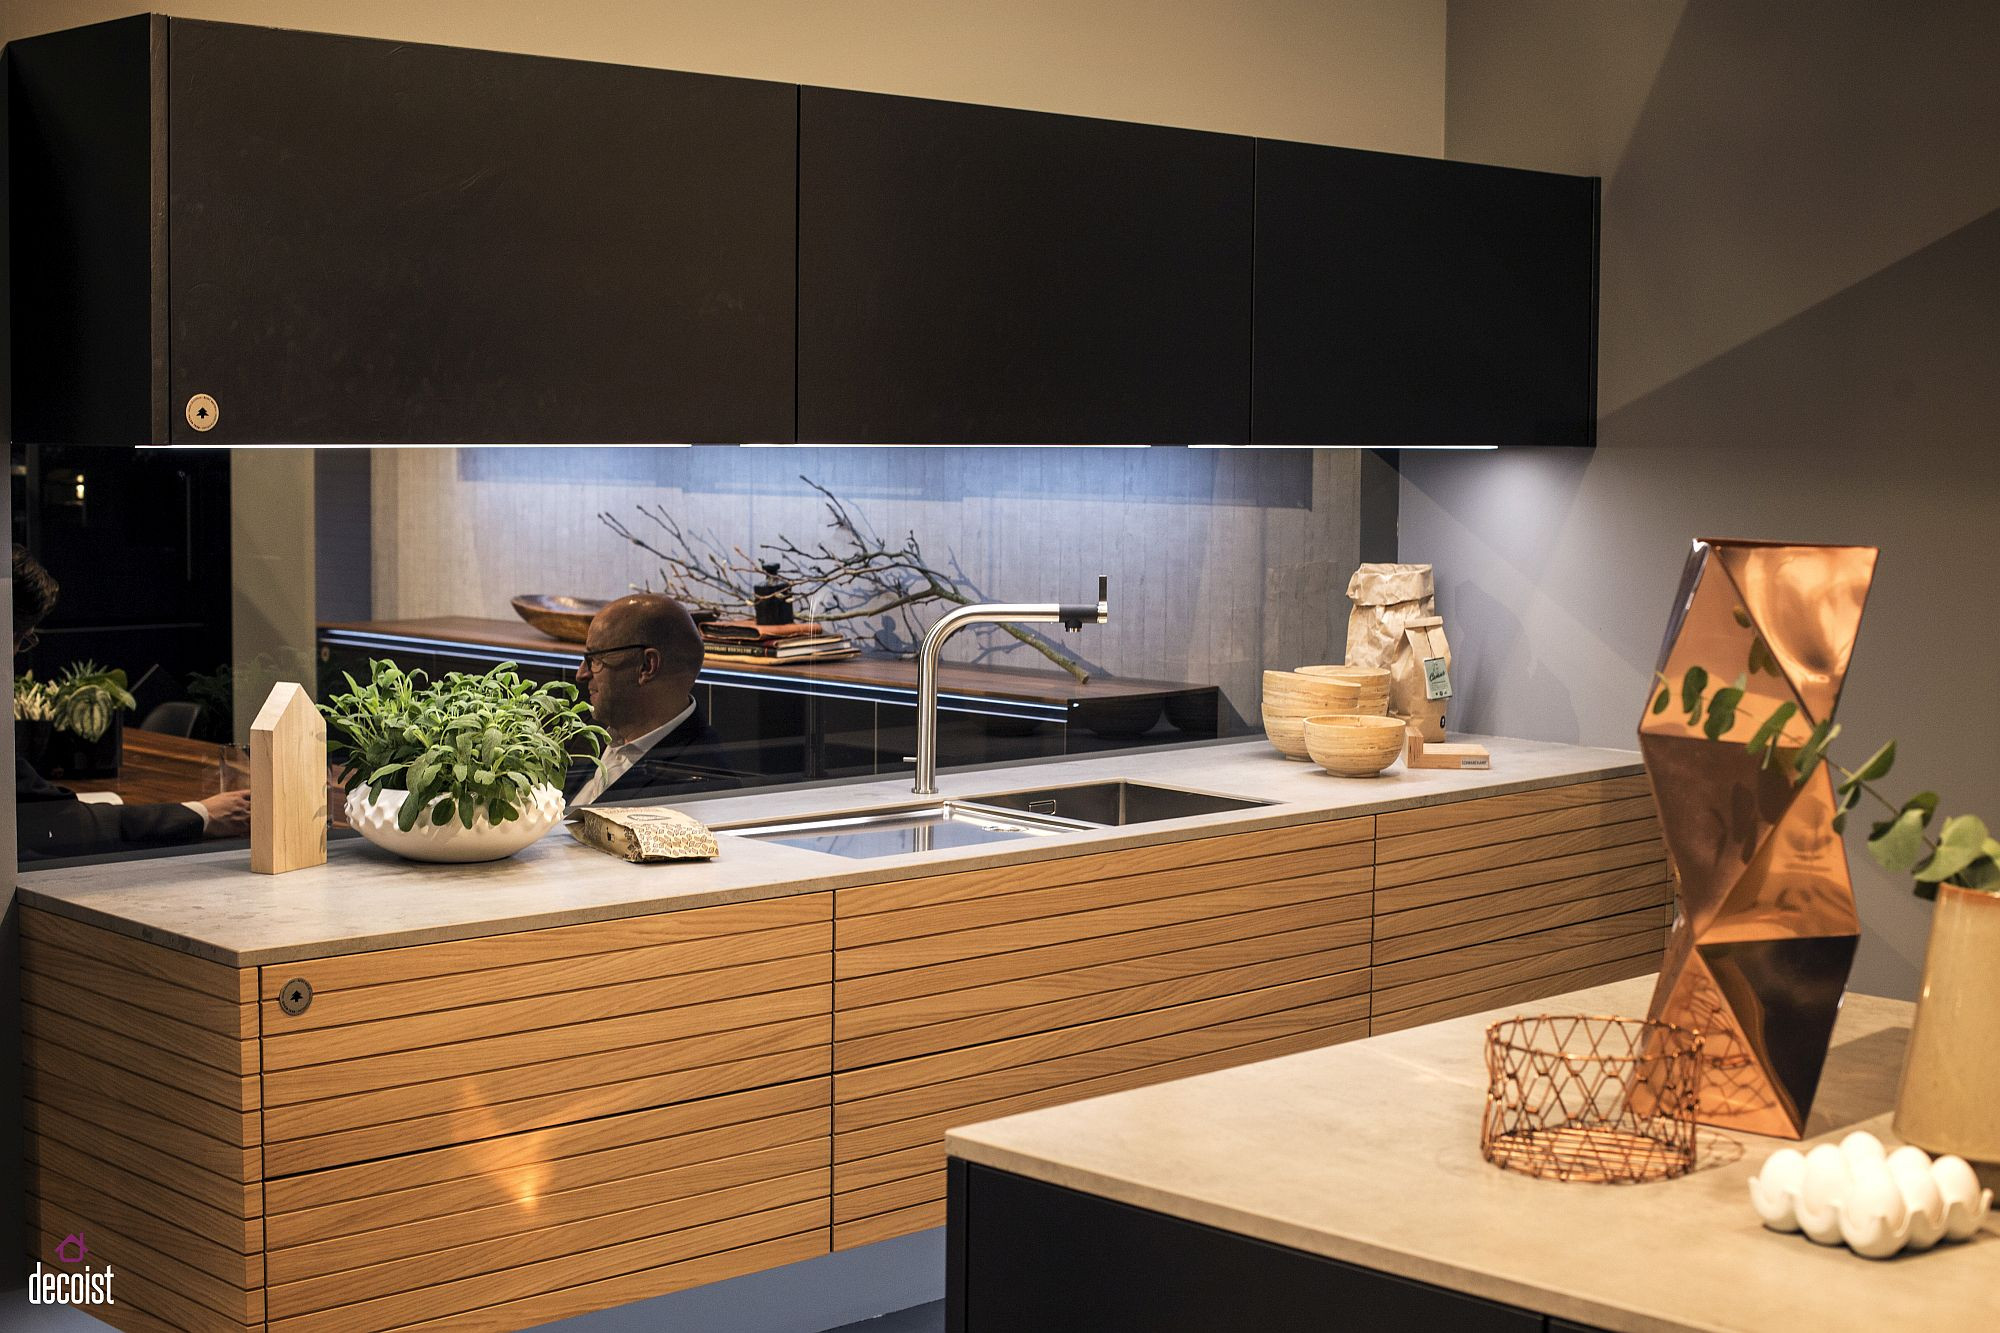 Kitchen Led Lights Under Cabinet  Decorating with LED Strip Lights Kitchens with Energy